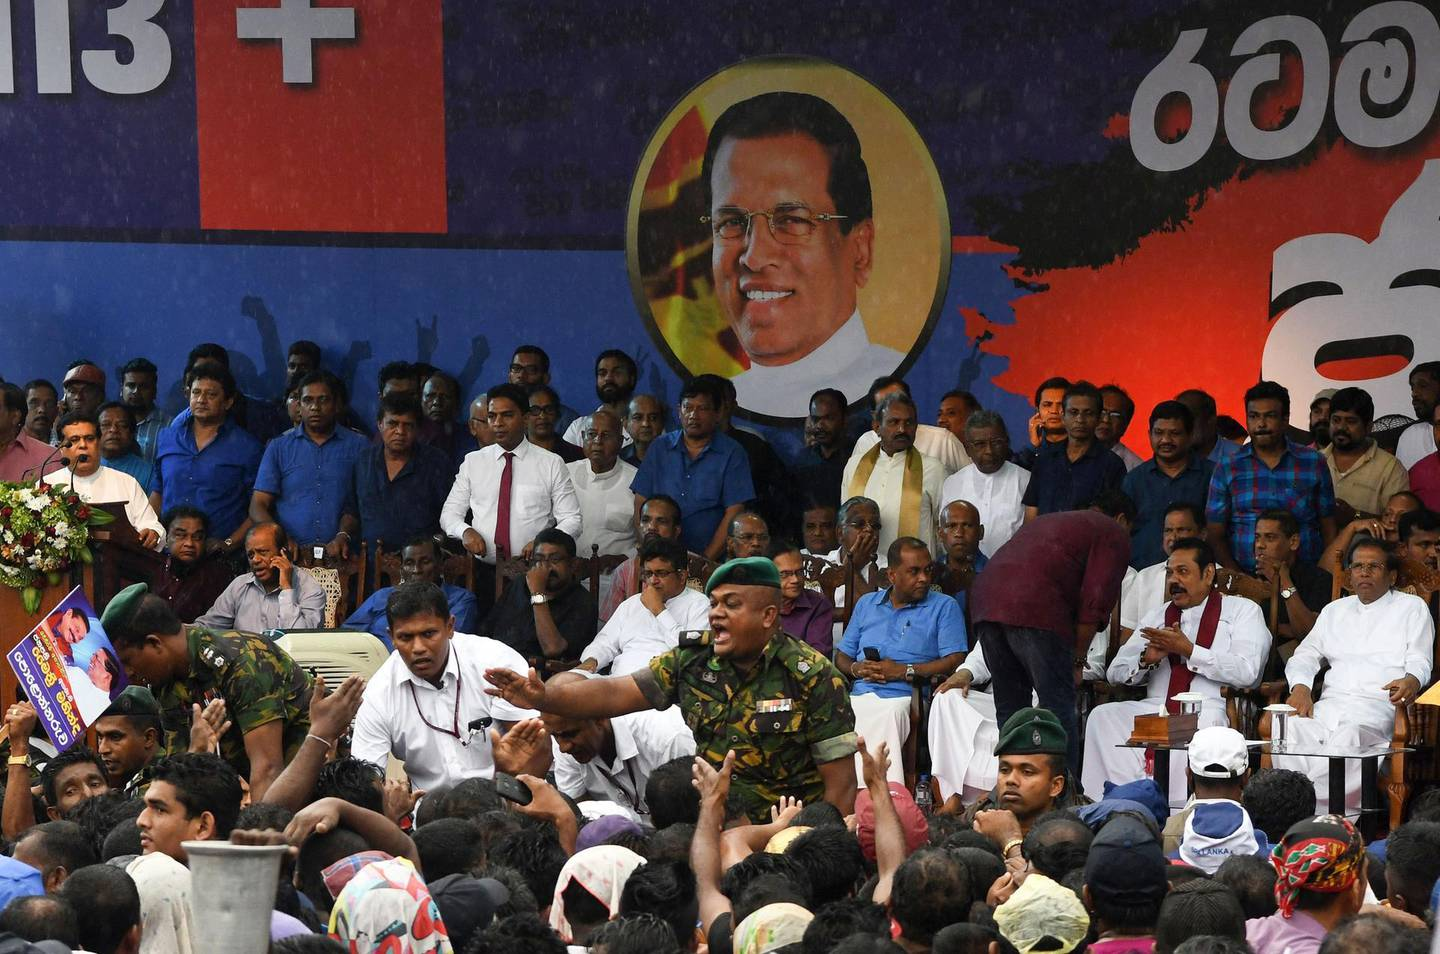 Sri Lankan police officer tries to control supporters of Sri Lanka's former president and newly appointed prime minister Mahinda Rajapakse and President Maithripala Sirisena at a rally in Colombo on November 5, 2018. Thousands of supporters of former Sri Lankan president Mahinda Rajapakse headed for the capital on November 5 to rally in support of his controversial nomination as prime minister, as the island's constitutional crisis deepened.  / AFP / LAKRUWAN WANNIARACHCHI